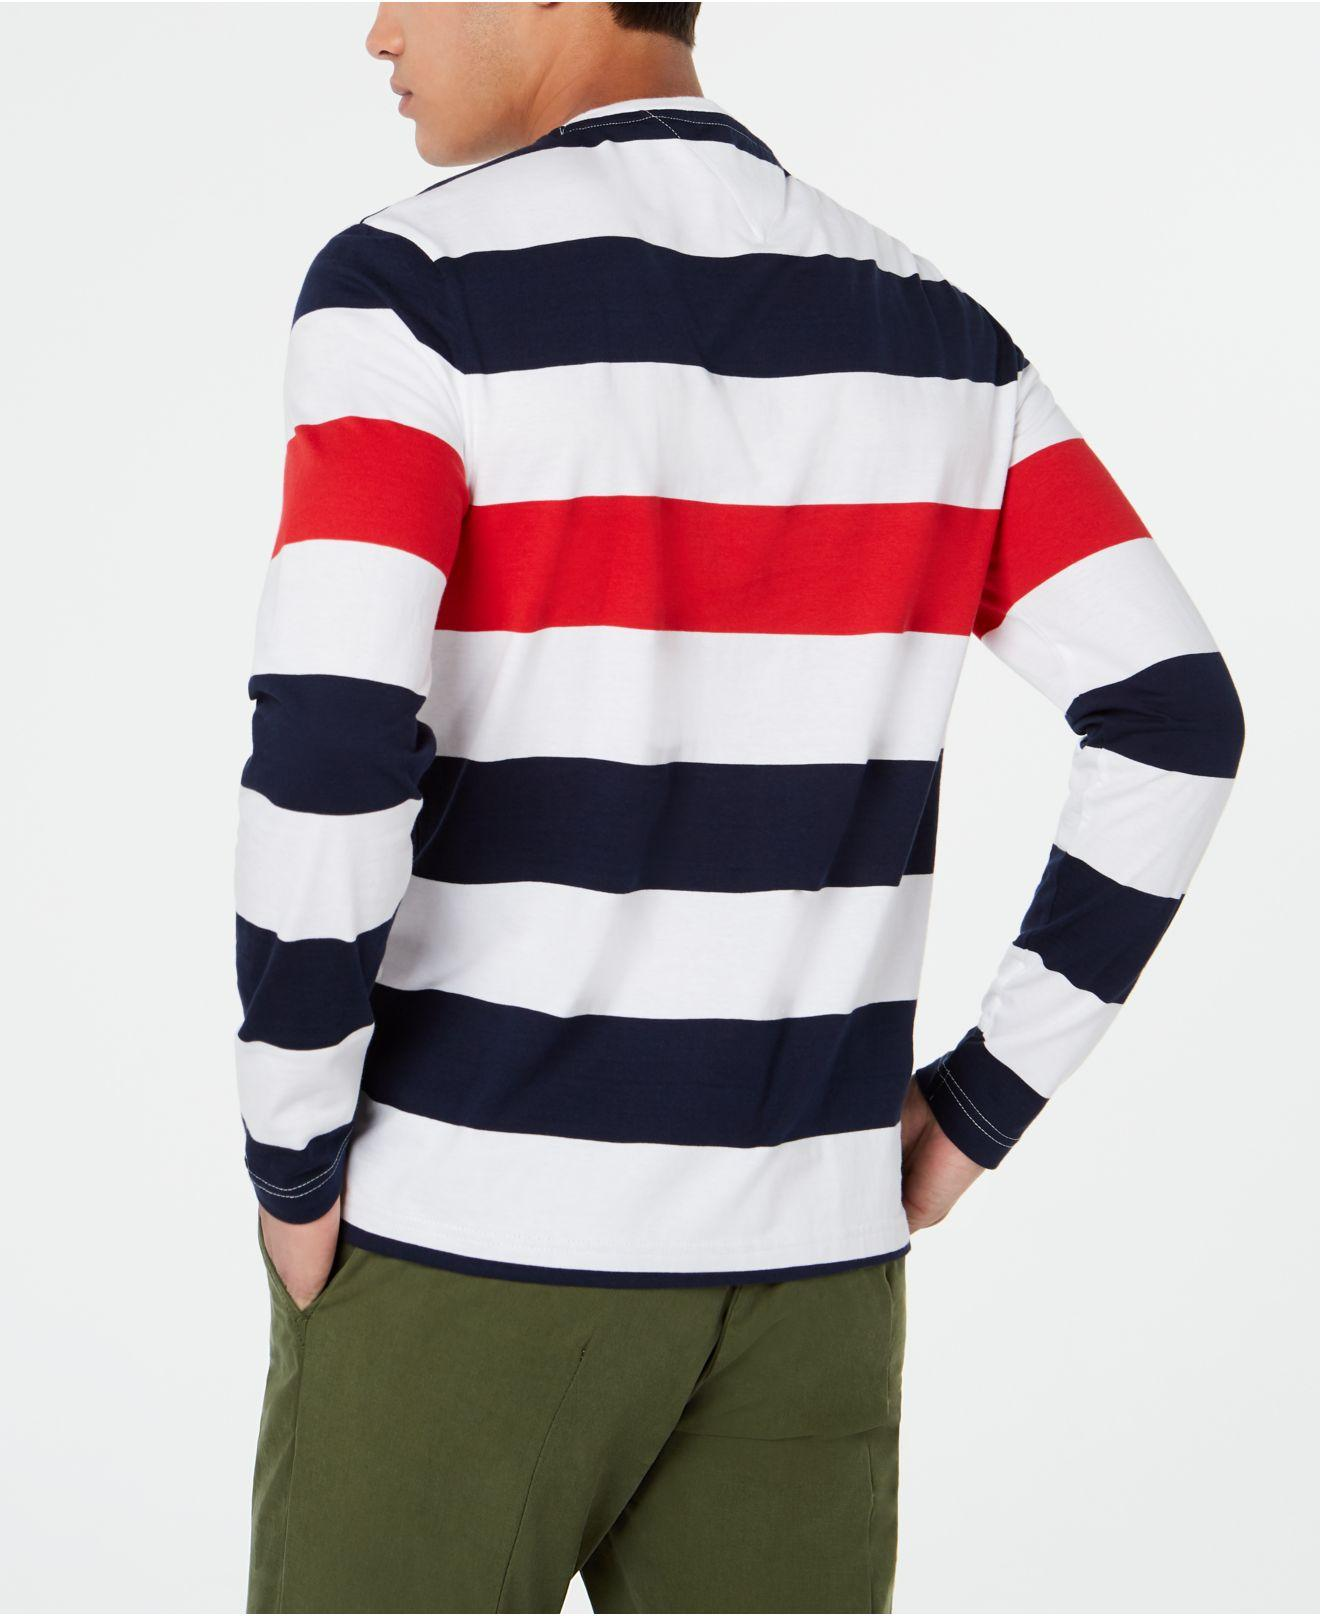 92e30f17ac4369 Lyst - Tommy Hilfiger Long-sleeve Striped T-shirt